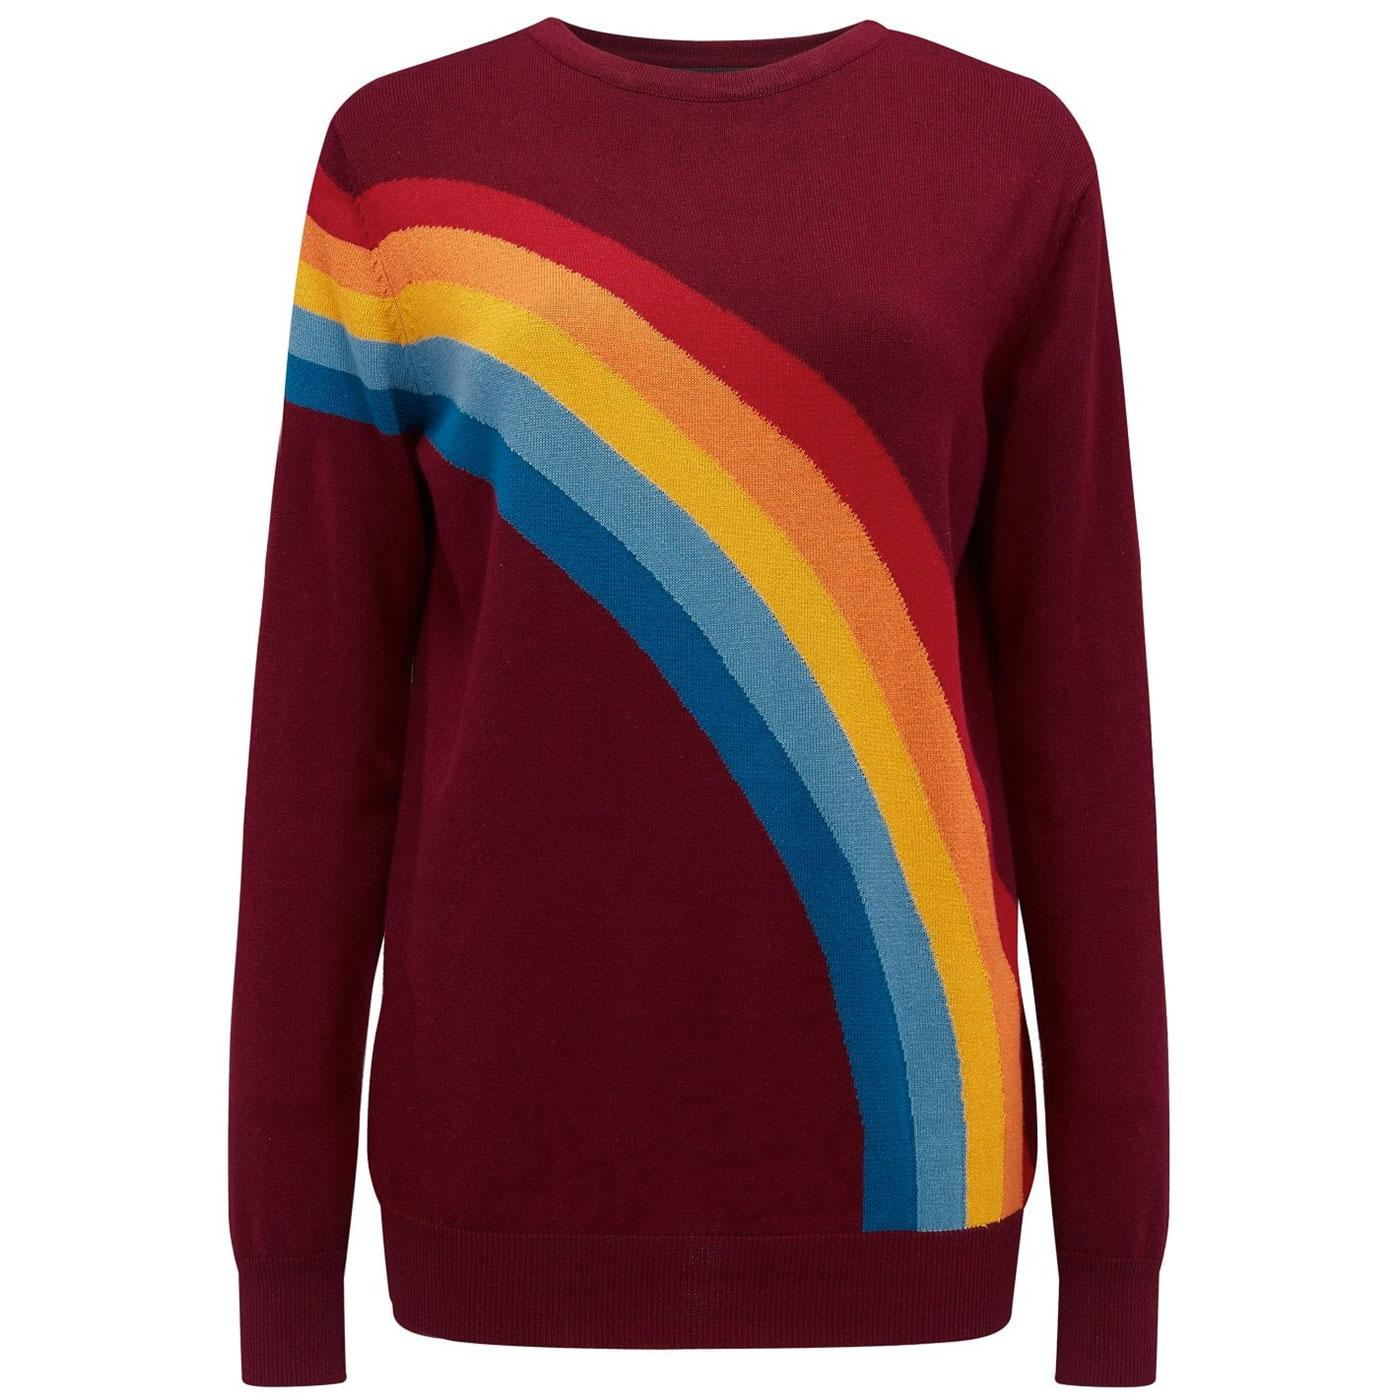 Rita Rainbow SUGARHILL BOUTIQUE 70s Sweater B